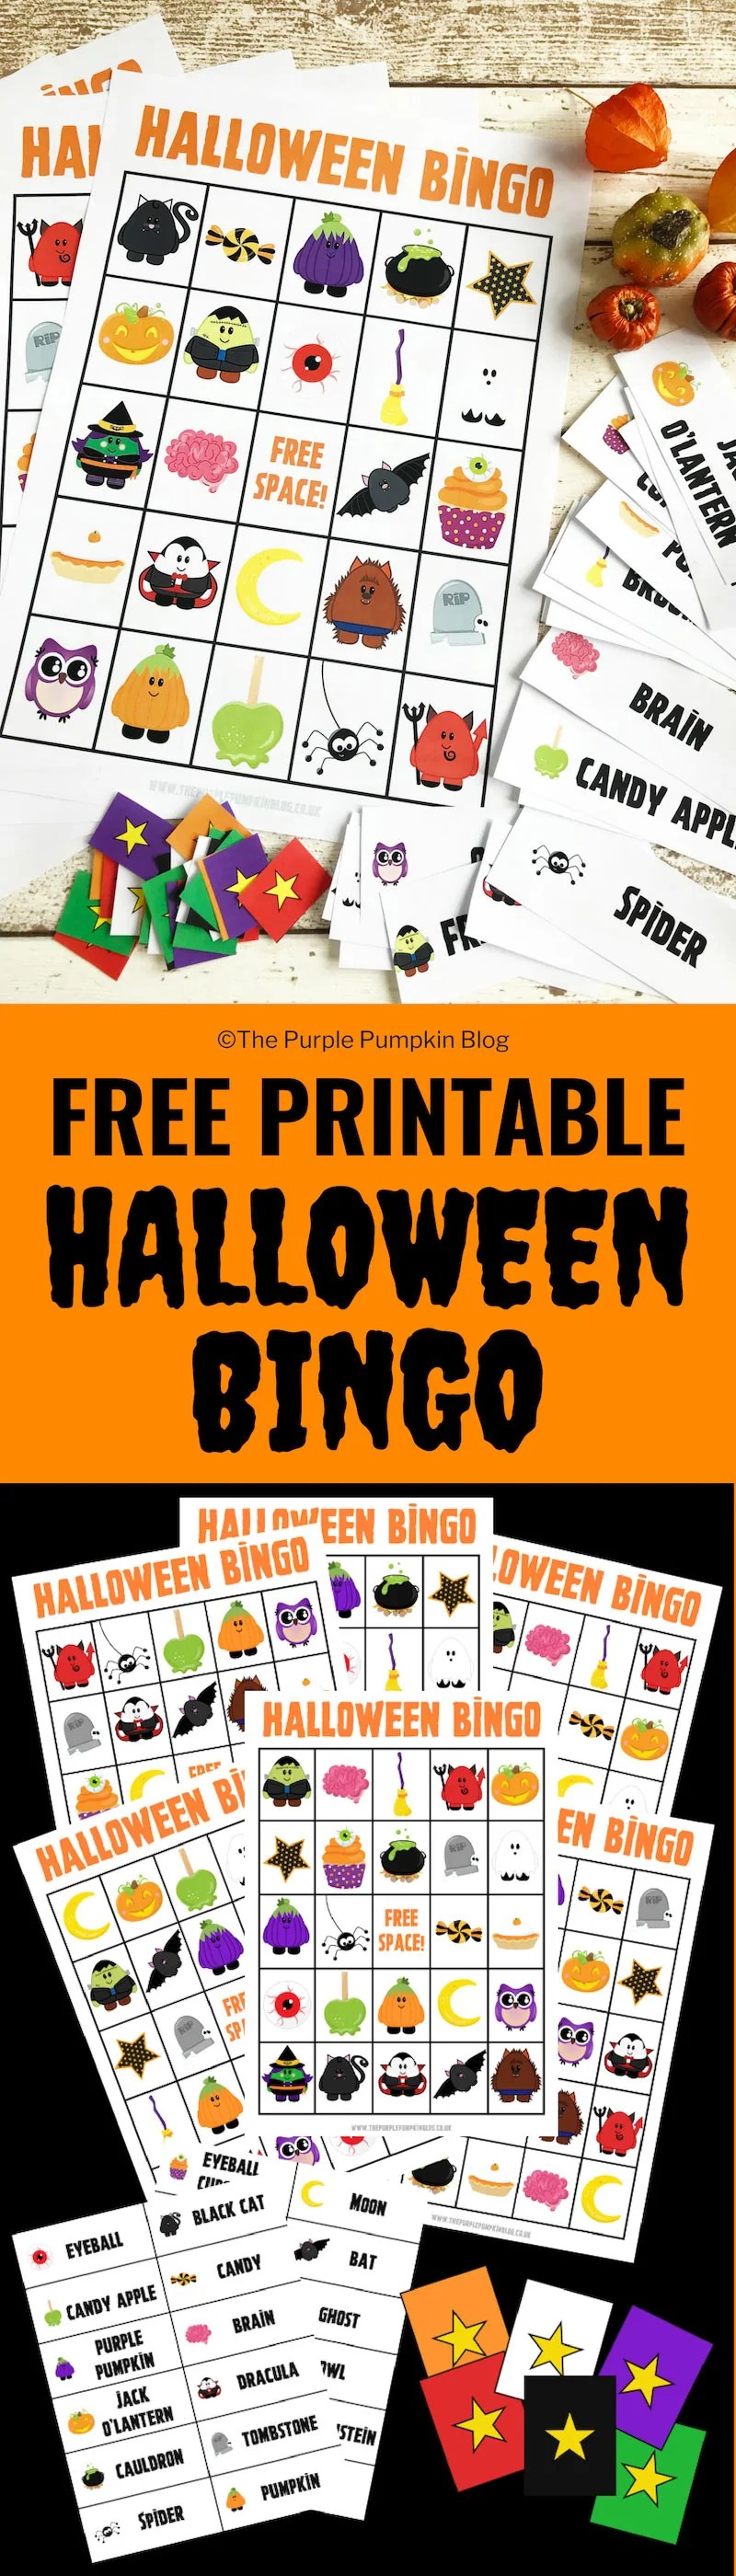 image about Free Printable Halloween Bingo named Enjoyment No cost Printable Halloween Bingo Match!